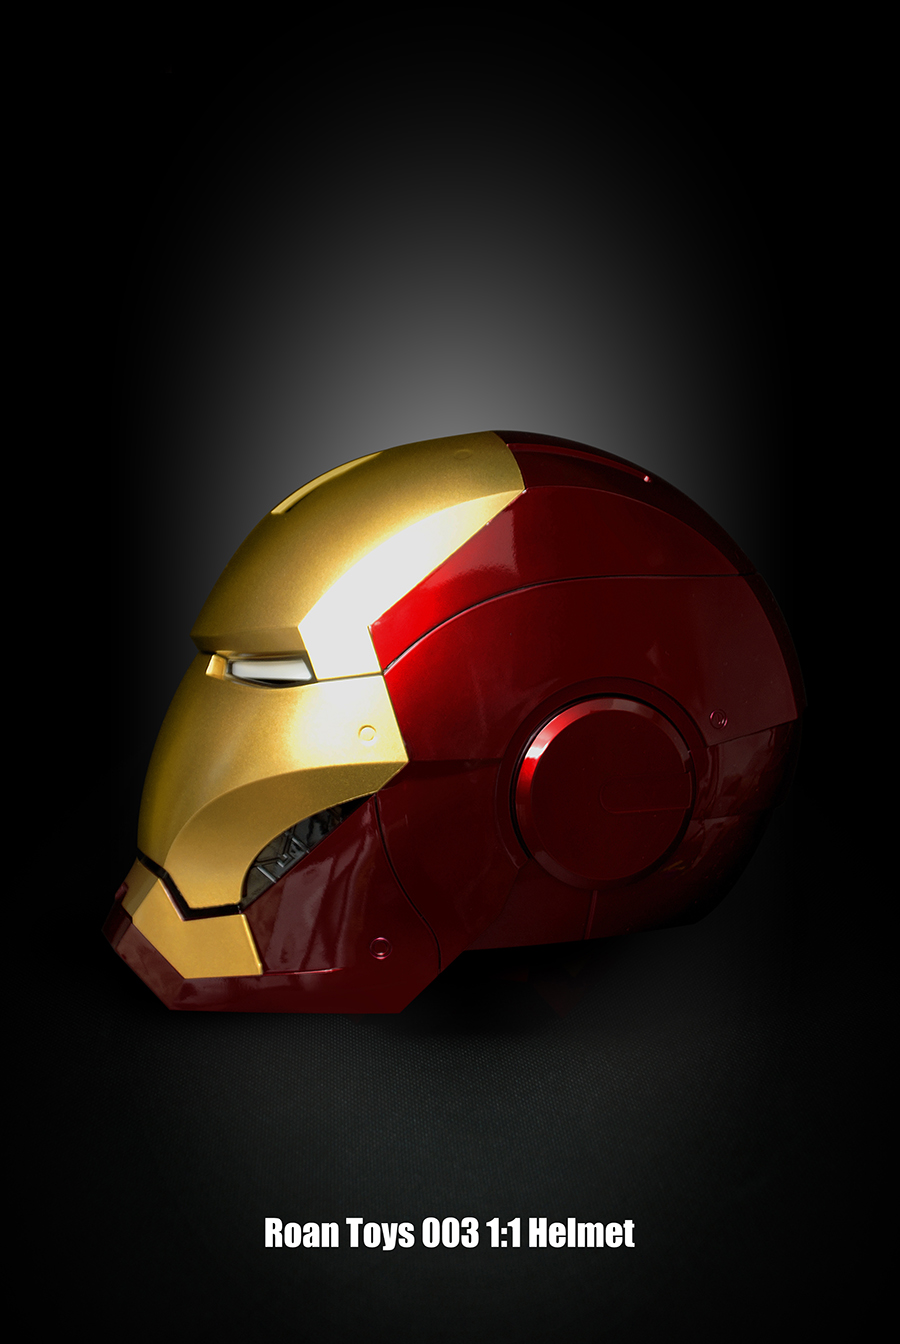 Roan Mk7 3 Cattoys Mk42 Iron Man Helmet 11 Induction Electric Luggage Tag Ironman Head State Of Sale Spot